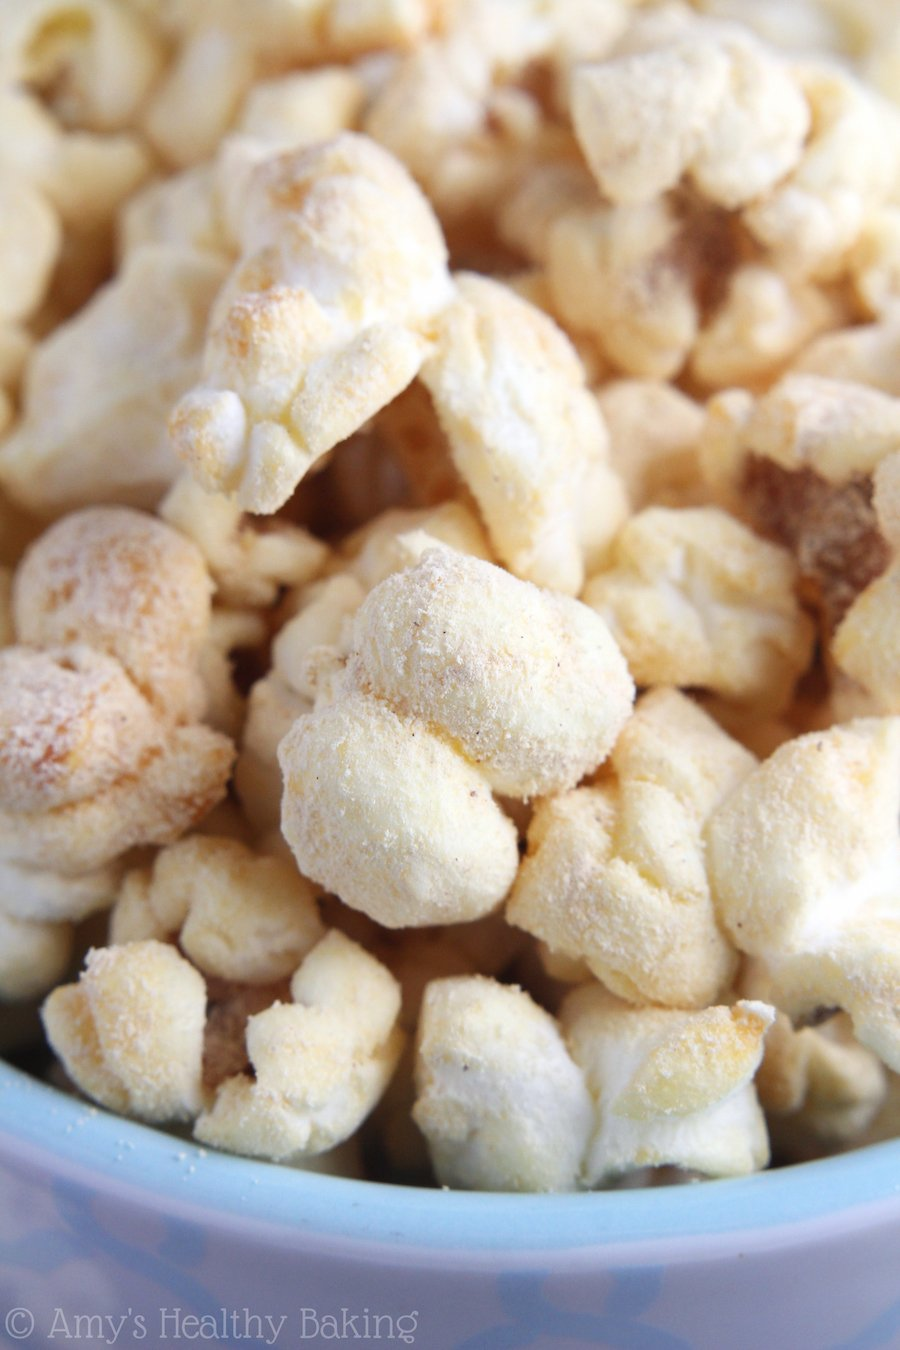 Skinny Peanut Butter Kettle Corn -- you only need 4 ingredients & a pot to make this easy treat at home! Just 120 calories & 4g of protein in each big serving!